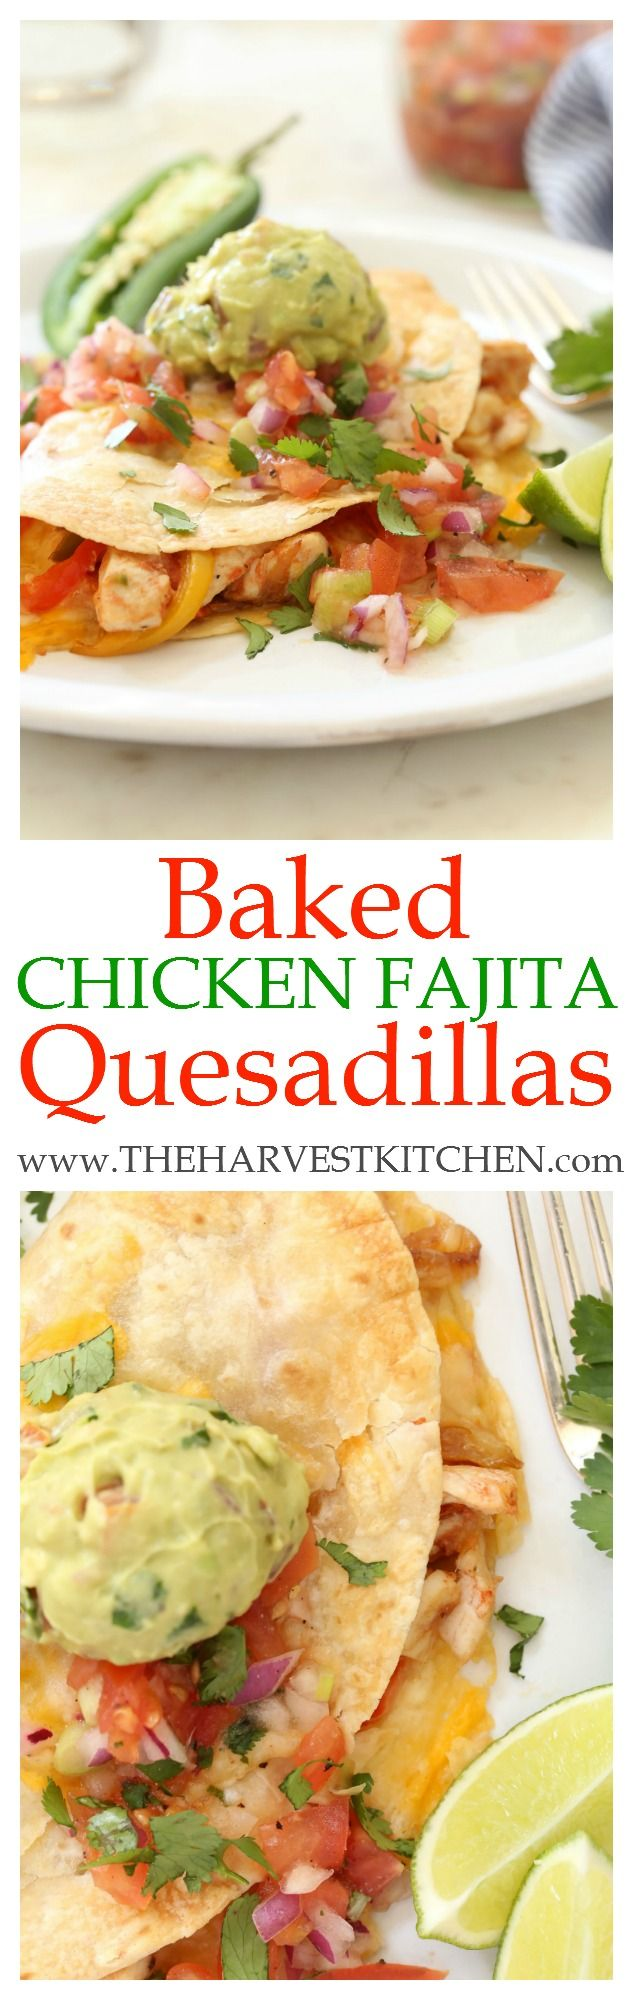 These crispy Baked Chicken Fajita Quesadillas are stuffed with savory Mexican flavors - tender bites of chicken cooked with garlic, jalapeño and tomato, some lightly browned onion, bell peppers and a blend of cheeses.